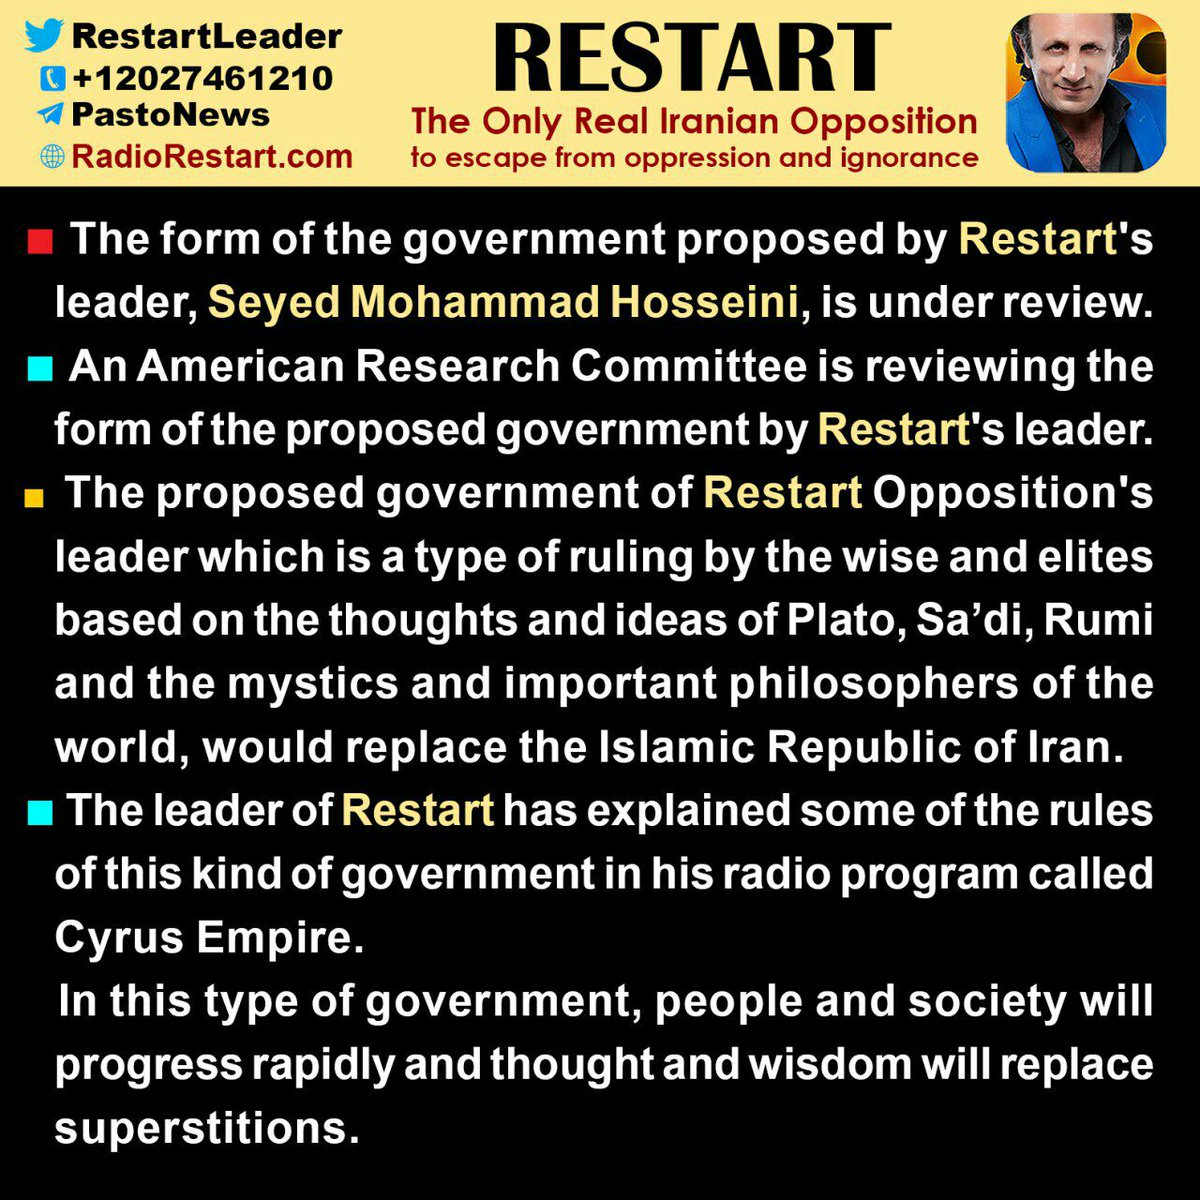 Censorship is the only tool for globalists against patriots, but ultimately victory will be patriotic.!$ @realDonaldTrump #restart_will_make_iran_great_again<br>http://pic.twitter.com/qQeL9IW3bC